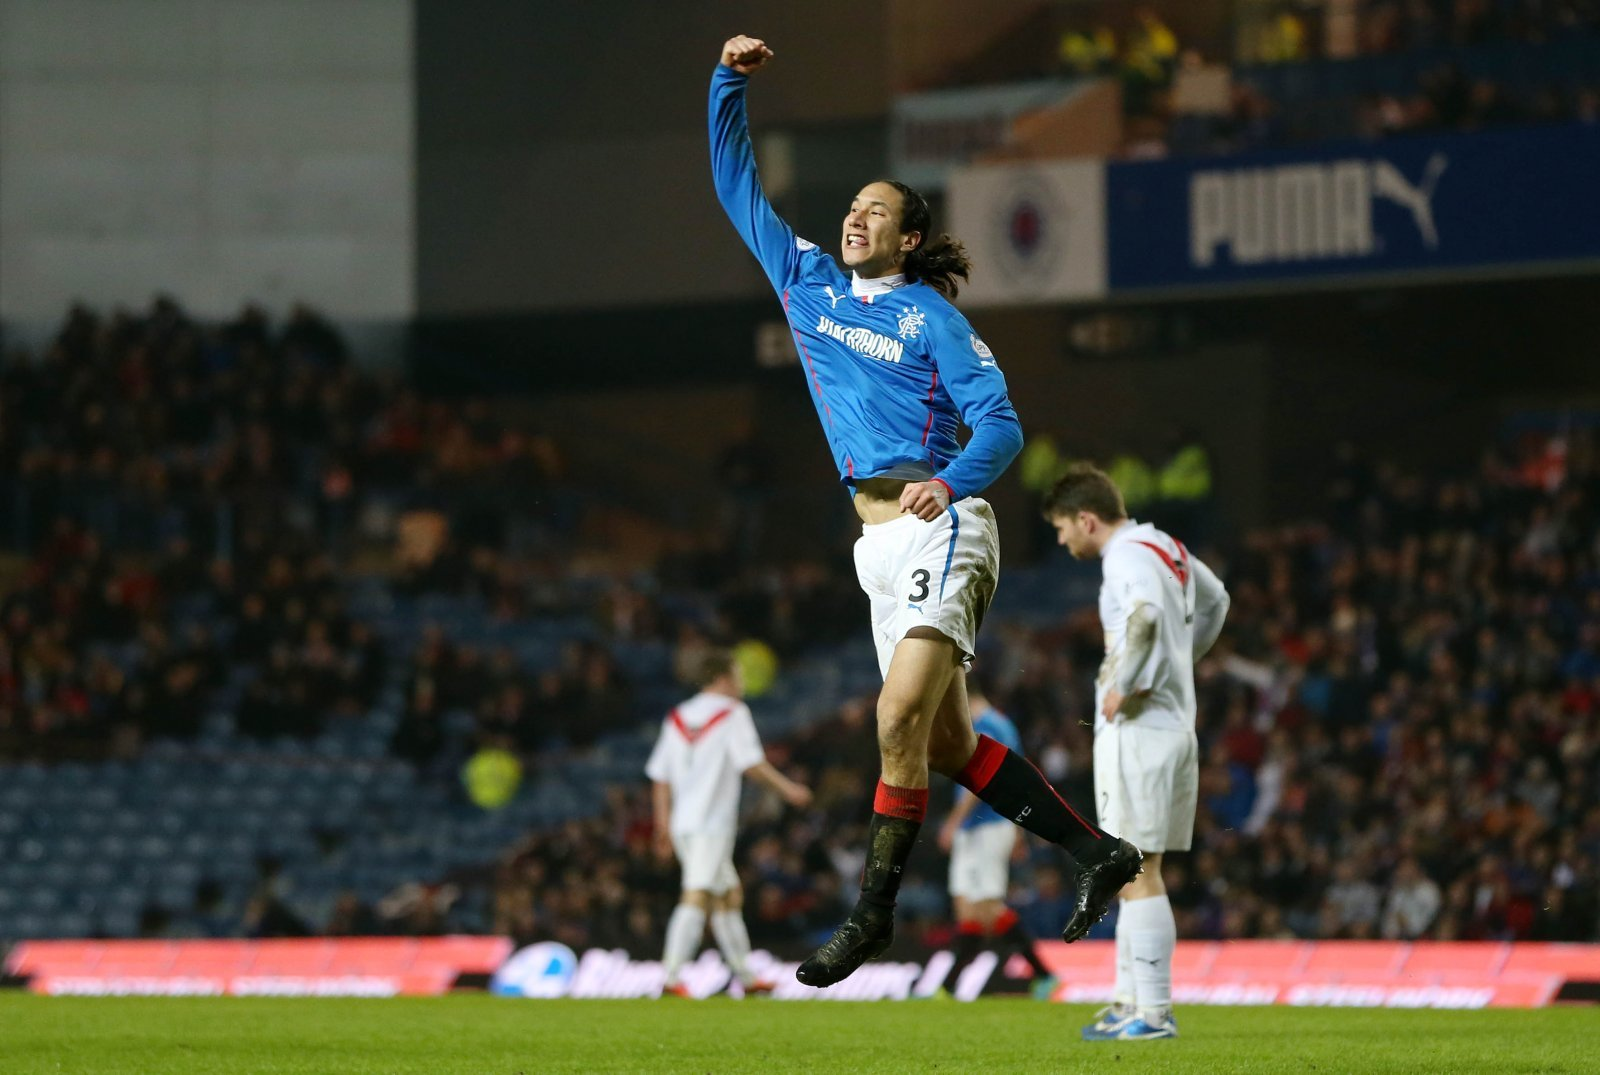 Look at him now: Life after Rangers for Bilel Mohsni